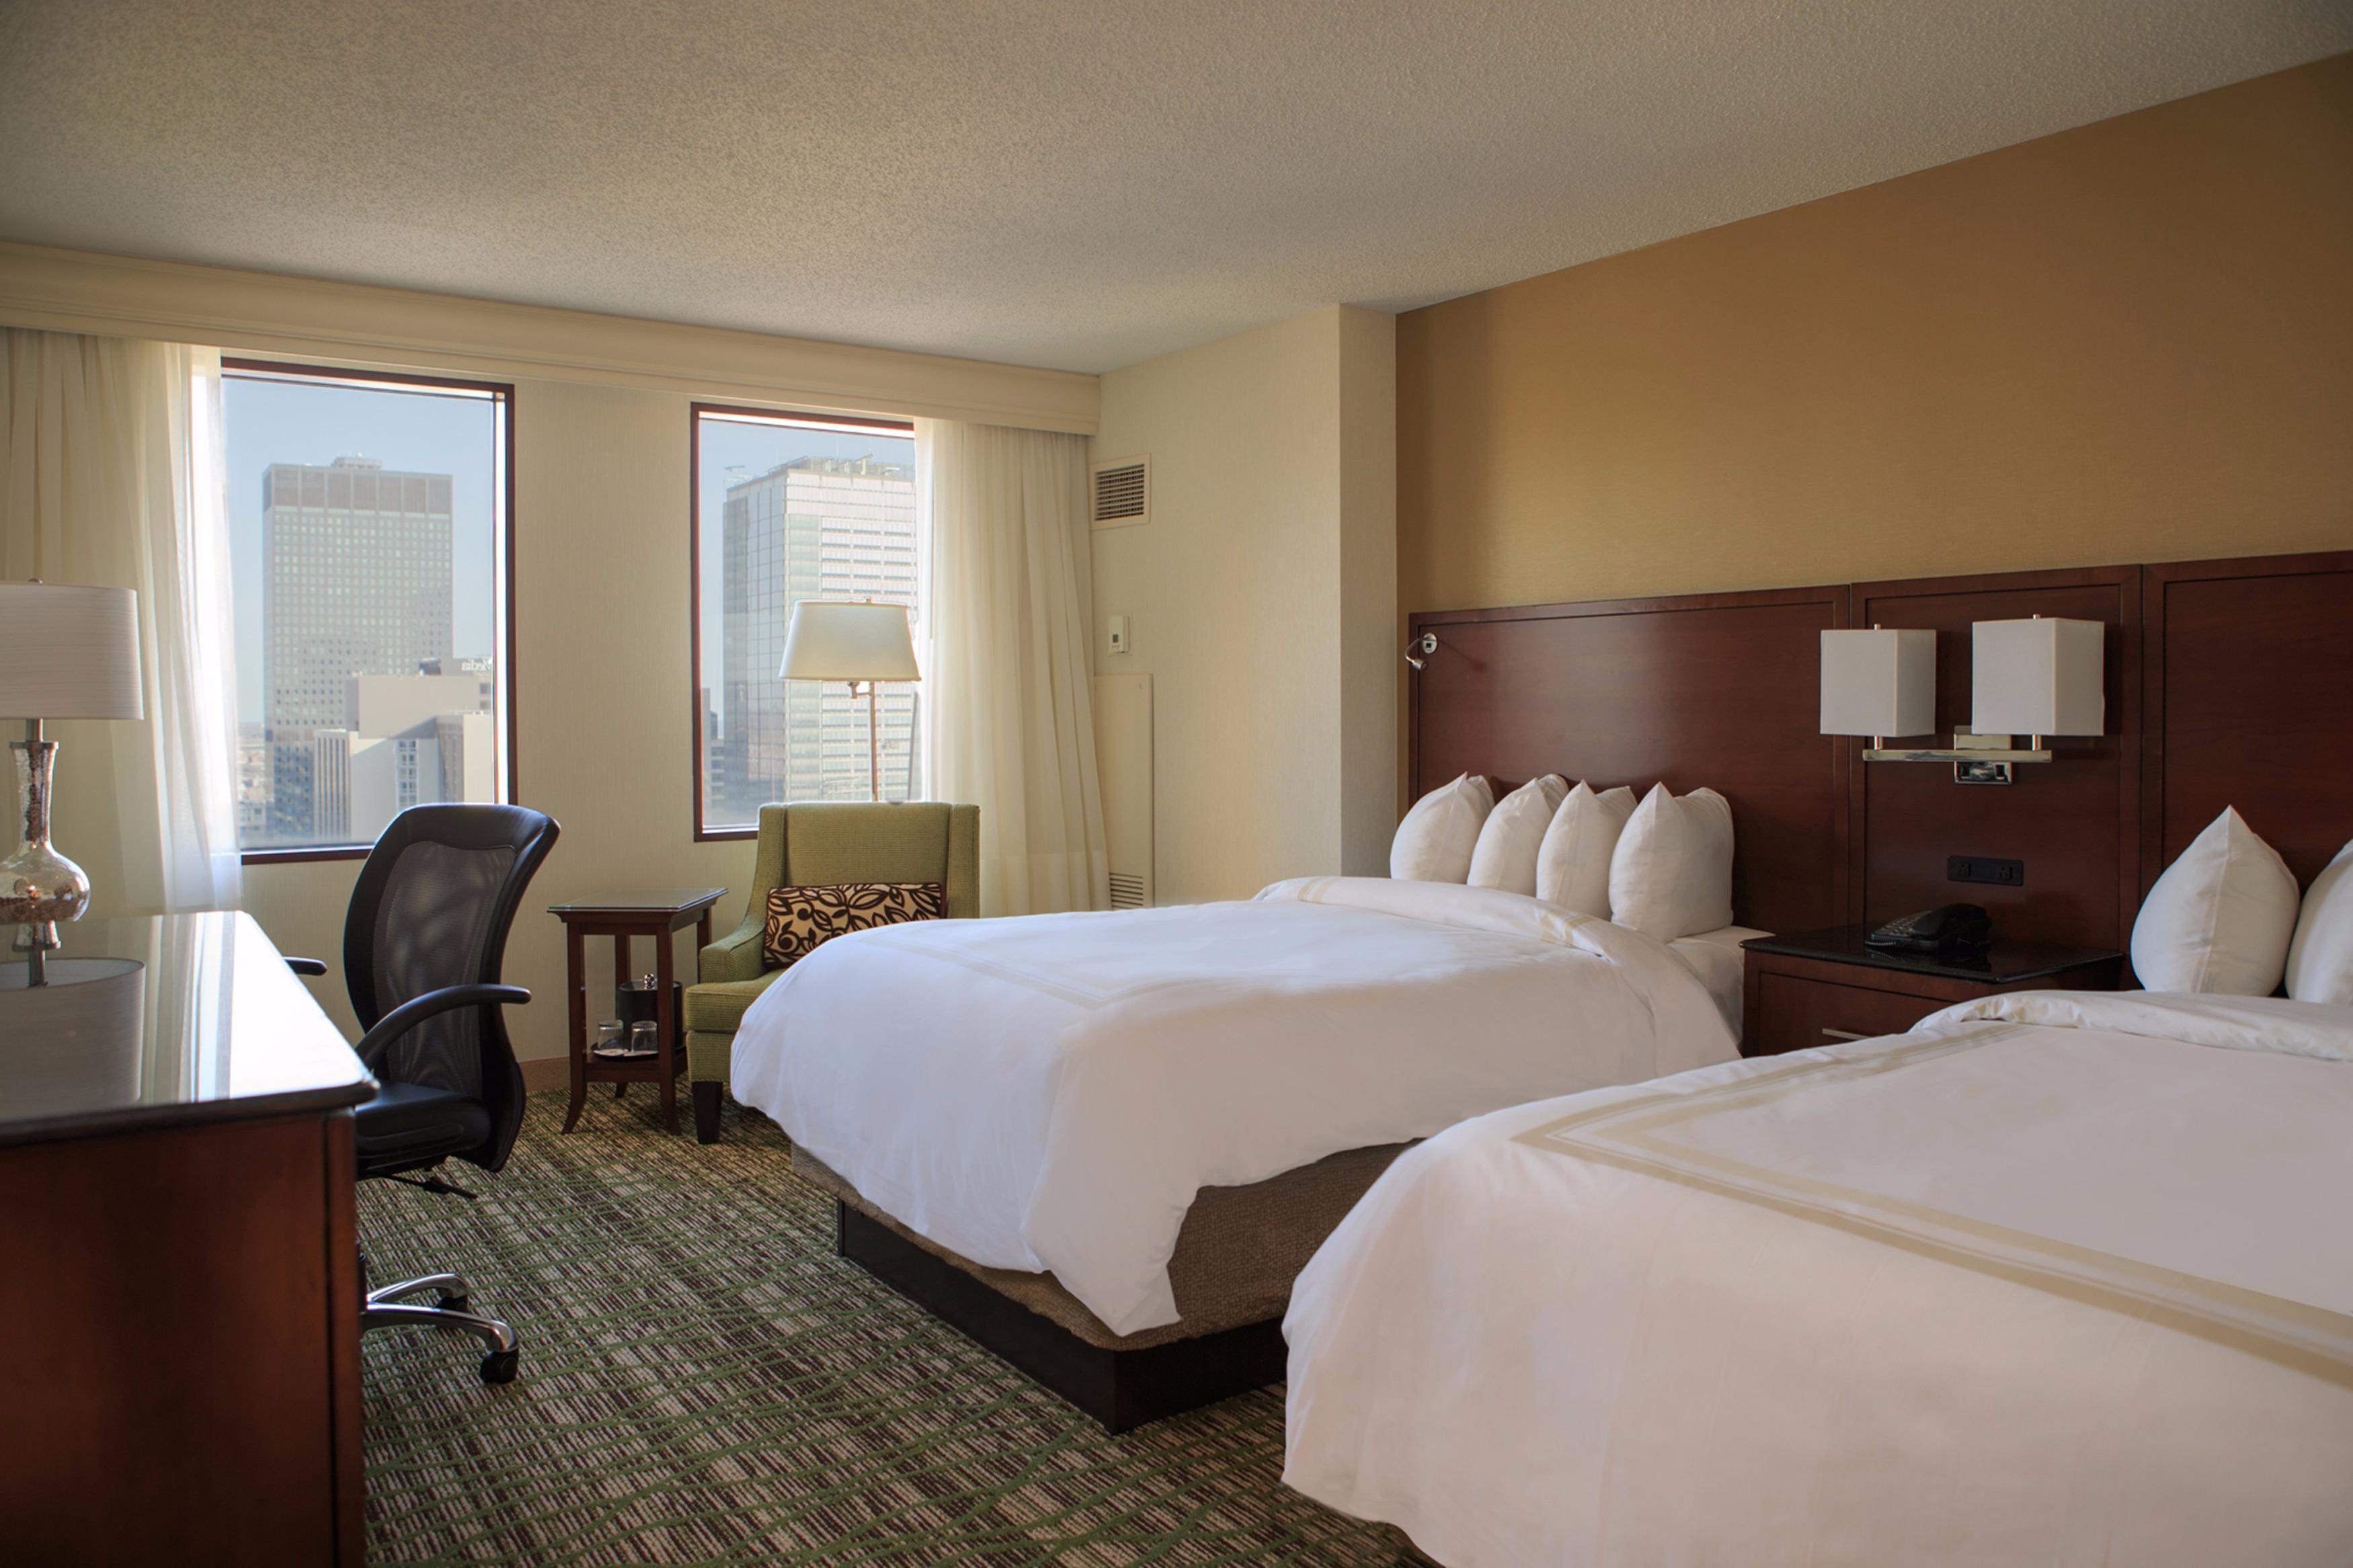 Relax and recharge in the modern comfort of thoroughly redesigned guest rooms, featuring Marriott signature bedding and exceptional amenities.